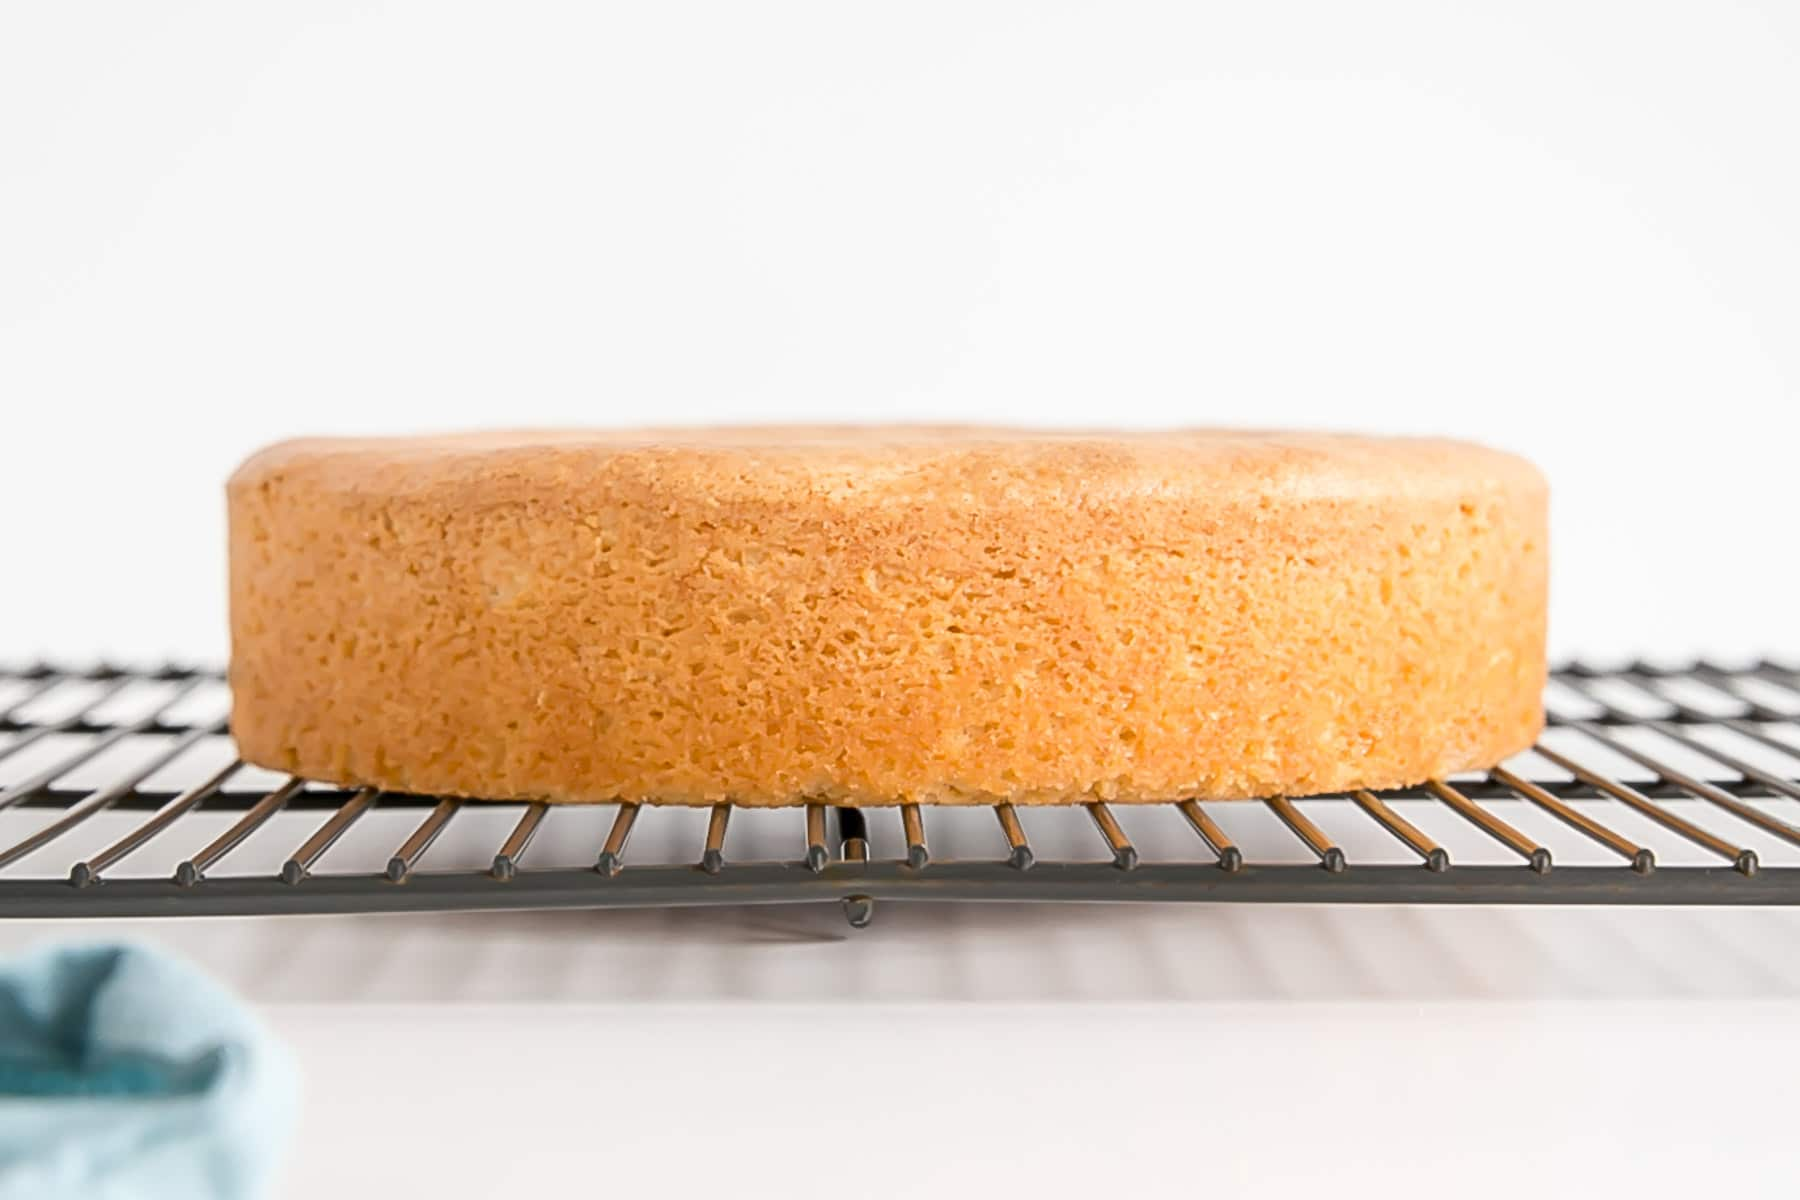 Perfectly flat cake on a cooling rack.